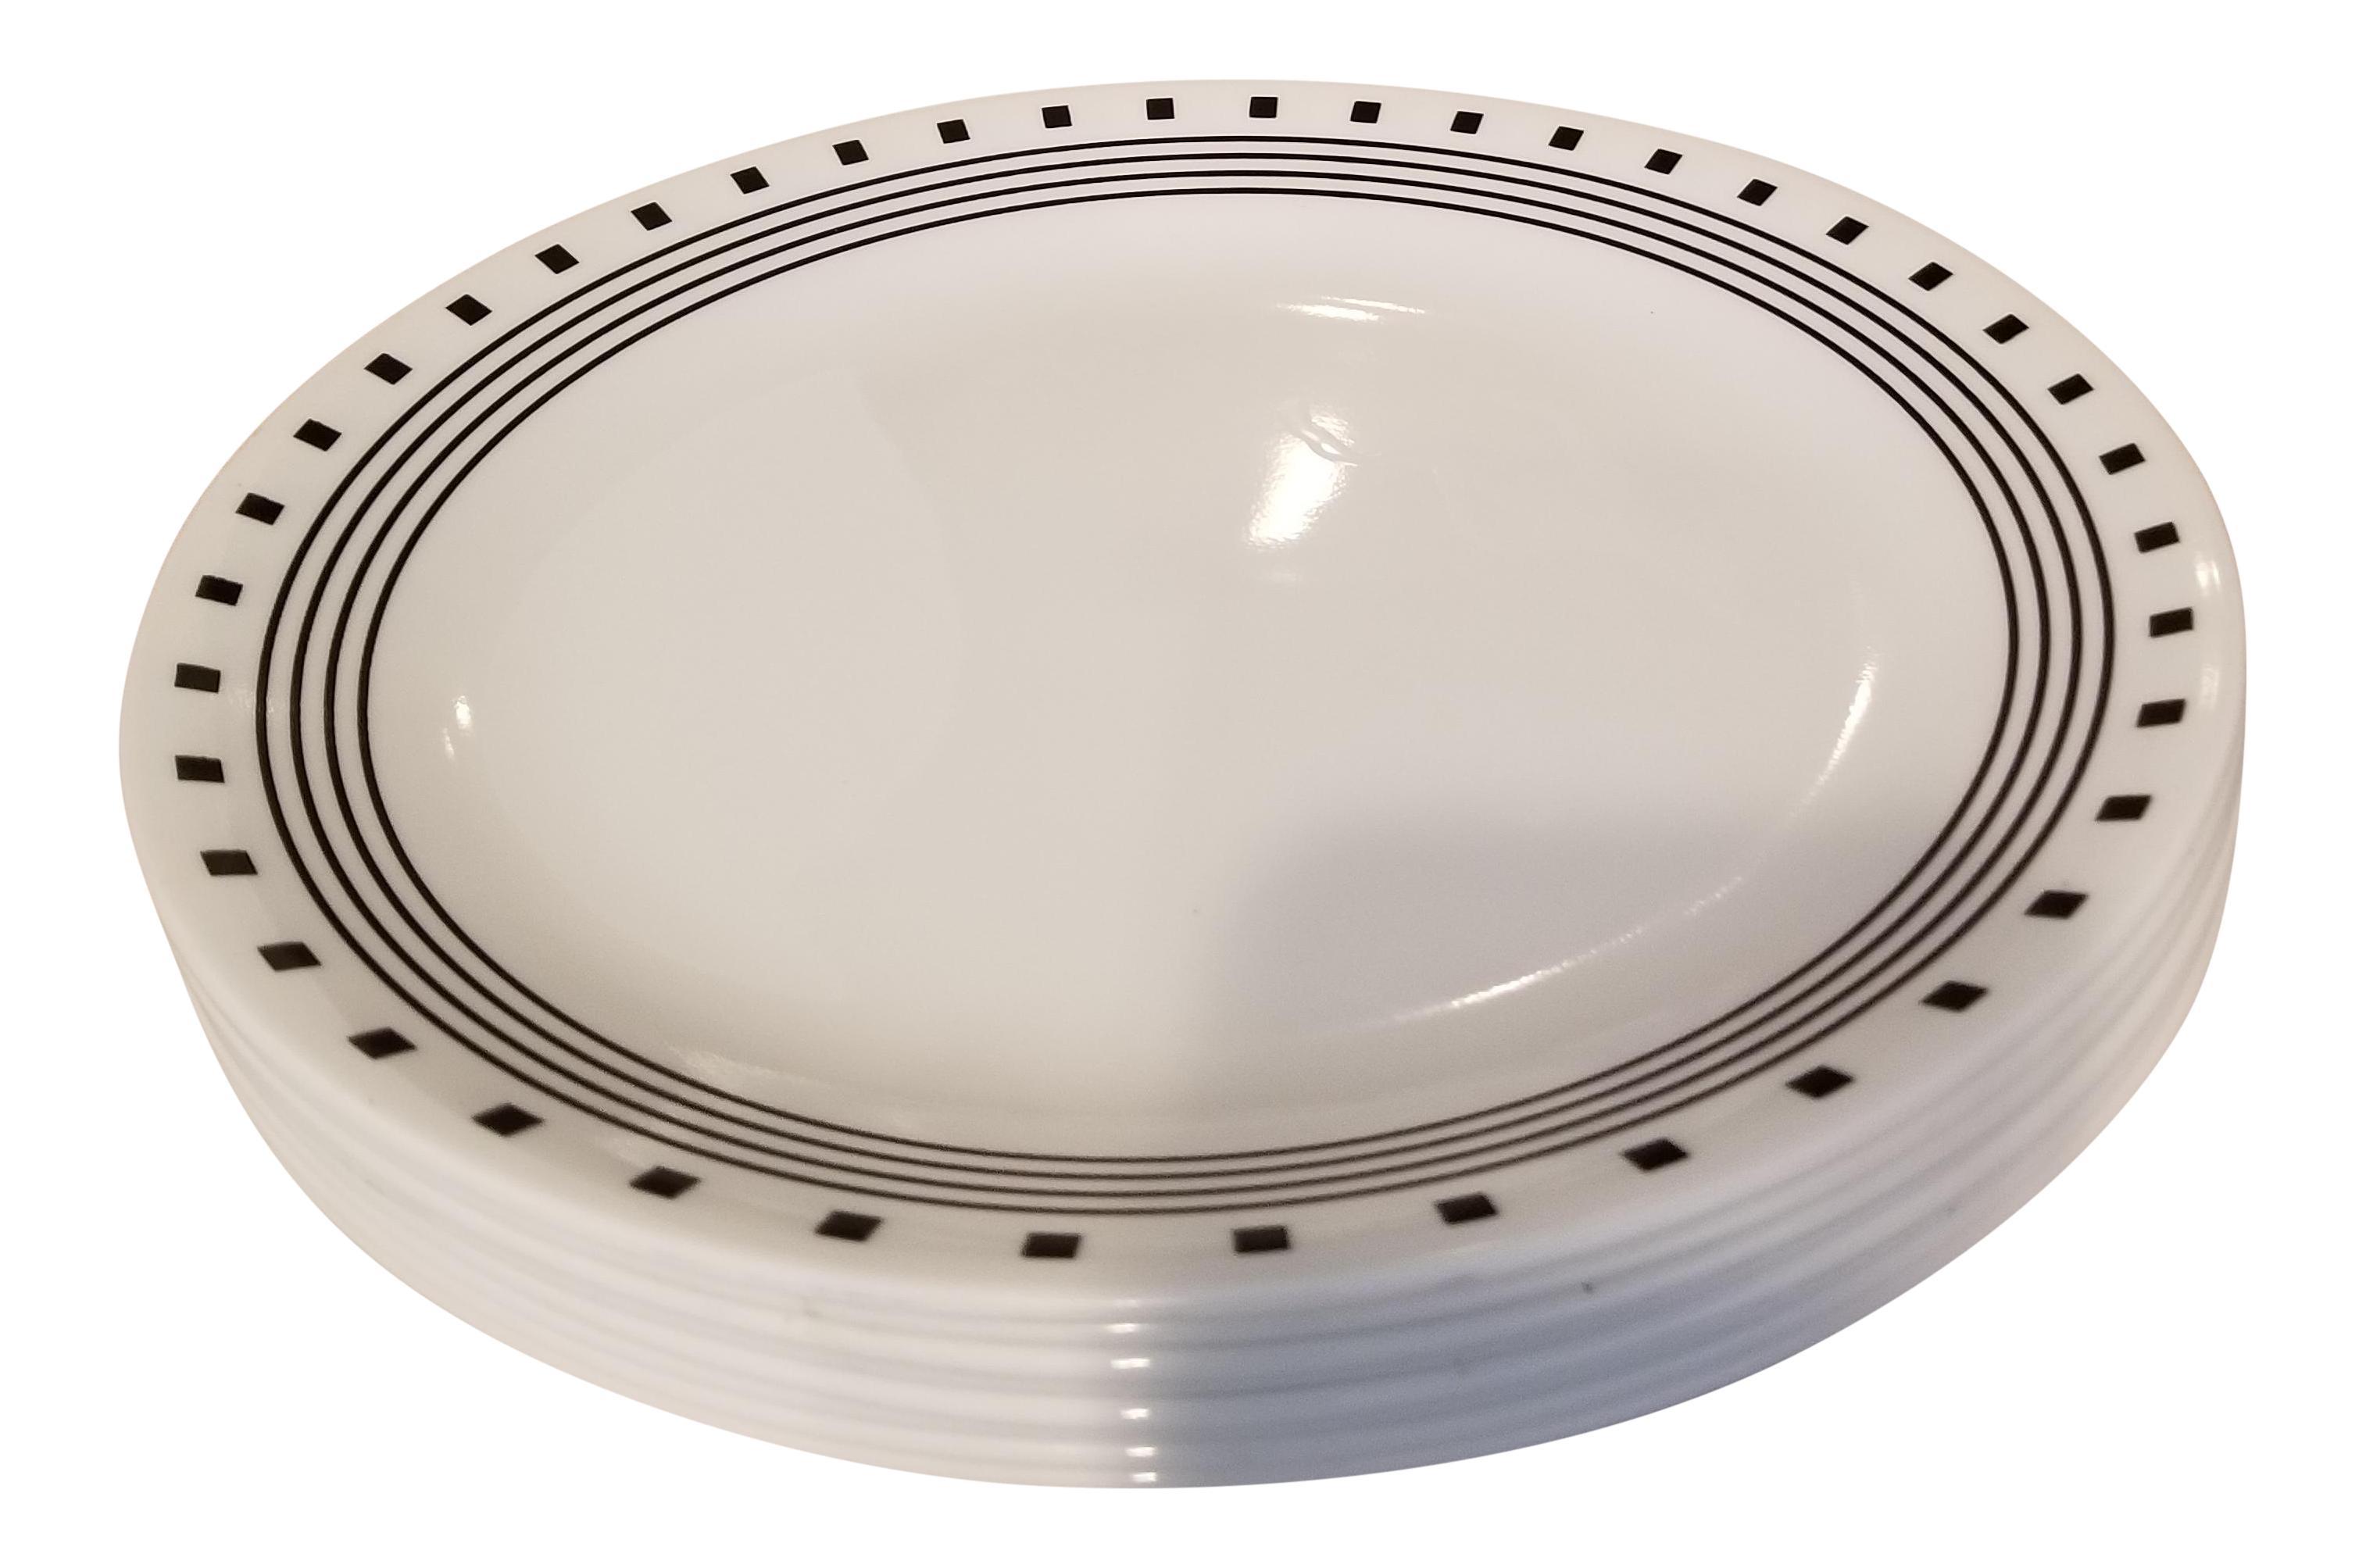 Vintage Black and White Corelle Large Dinner Plates - Set of 8 - Image 1 of  sc 1 st  Chairish & Vintage Black and White Corelle Large Dinner Plates - Set of 8 ...